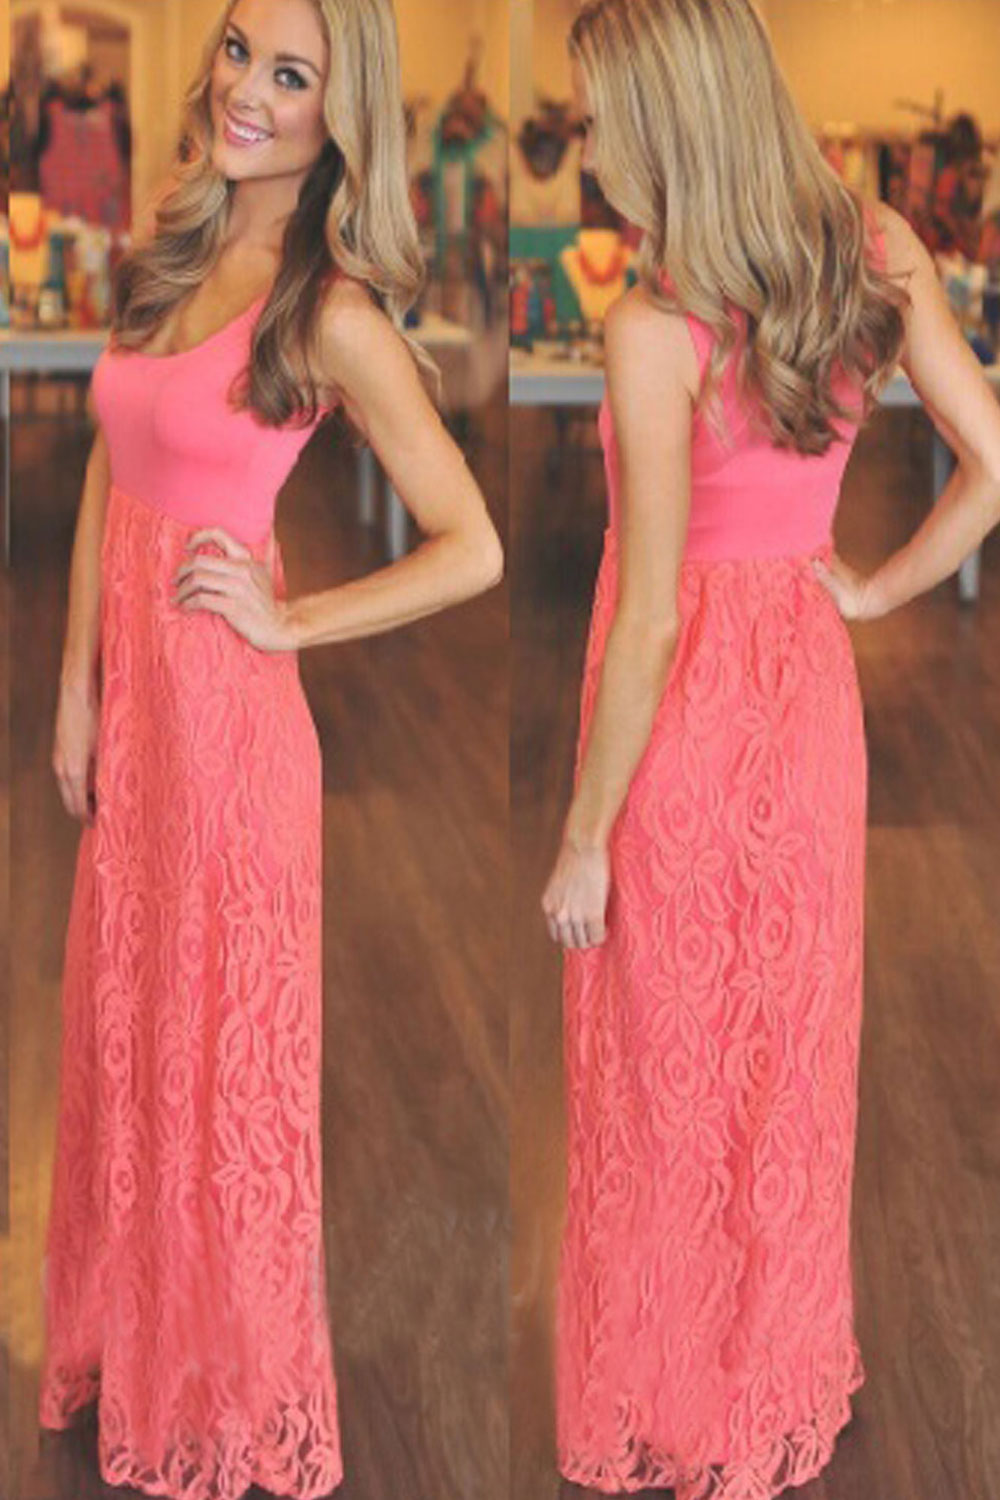 WOMENS SLEEVELESS FLOOR LENGTH LACE PARTY DRESS PINK